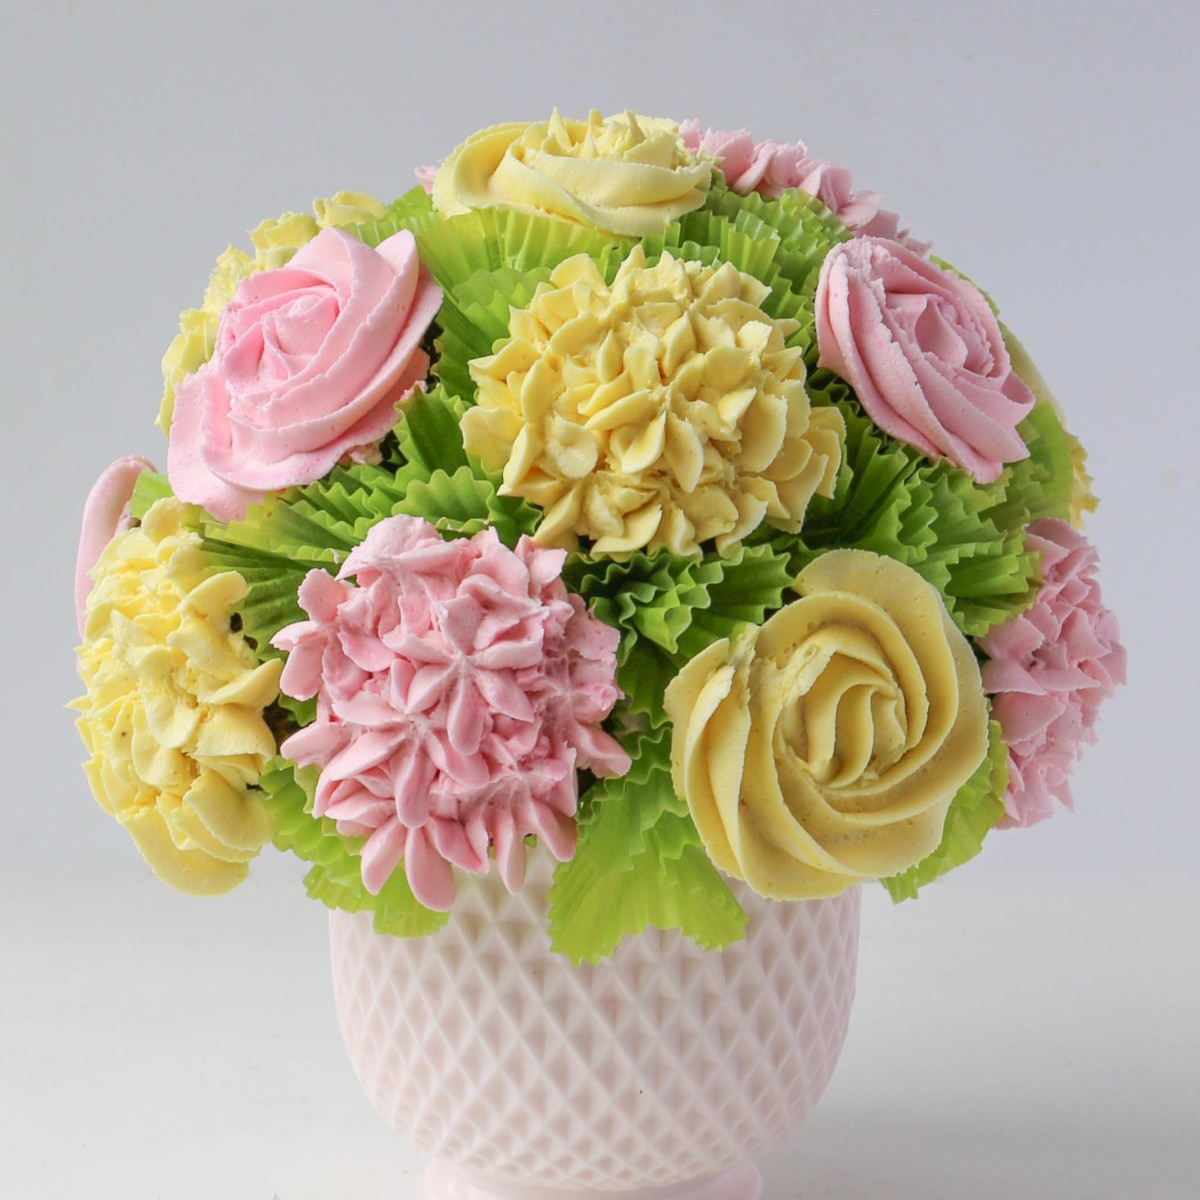 Mothers Day Cupcake Bouquet Recipe